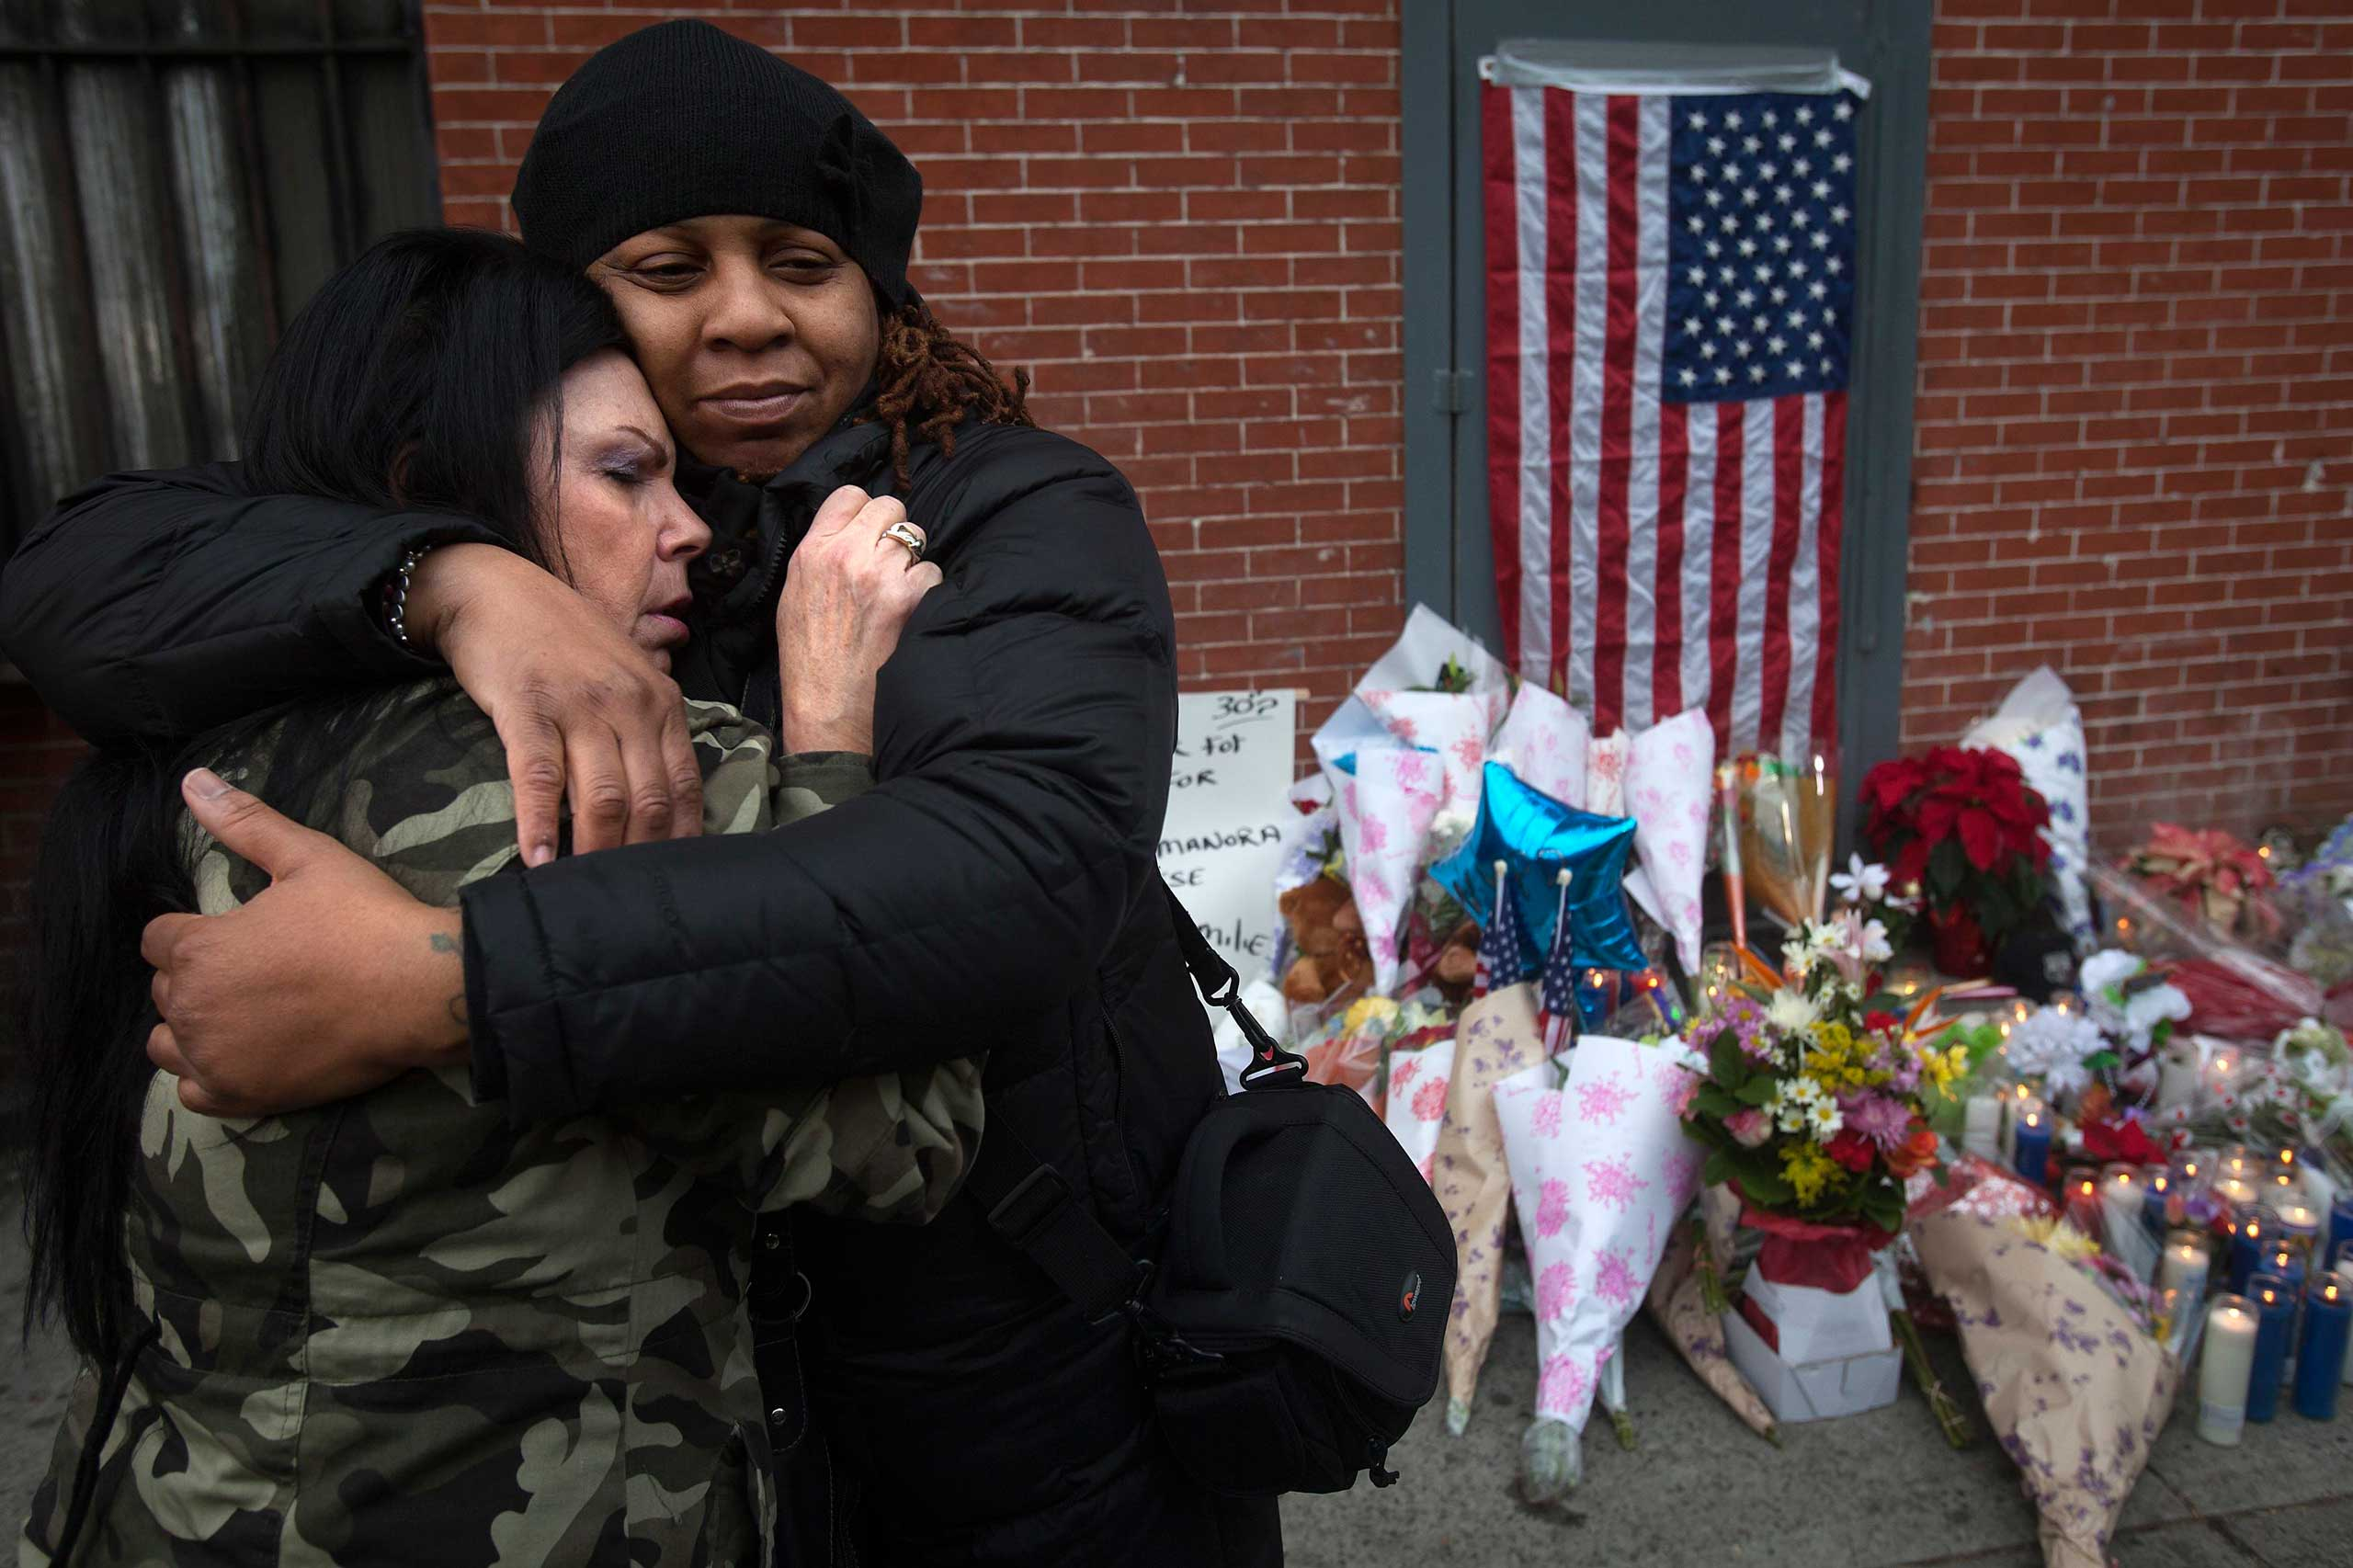 Donna Salvaggio (L) and a woman who gave her name as Reverend Jordan hug at a makeshift memorial at the site where two police officers were shot in the Brooklyn borough of New York City, Dec. 21, 2014.